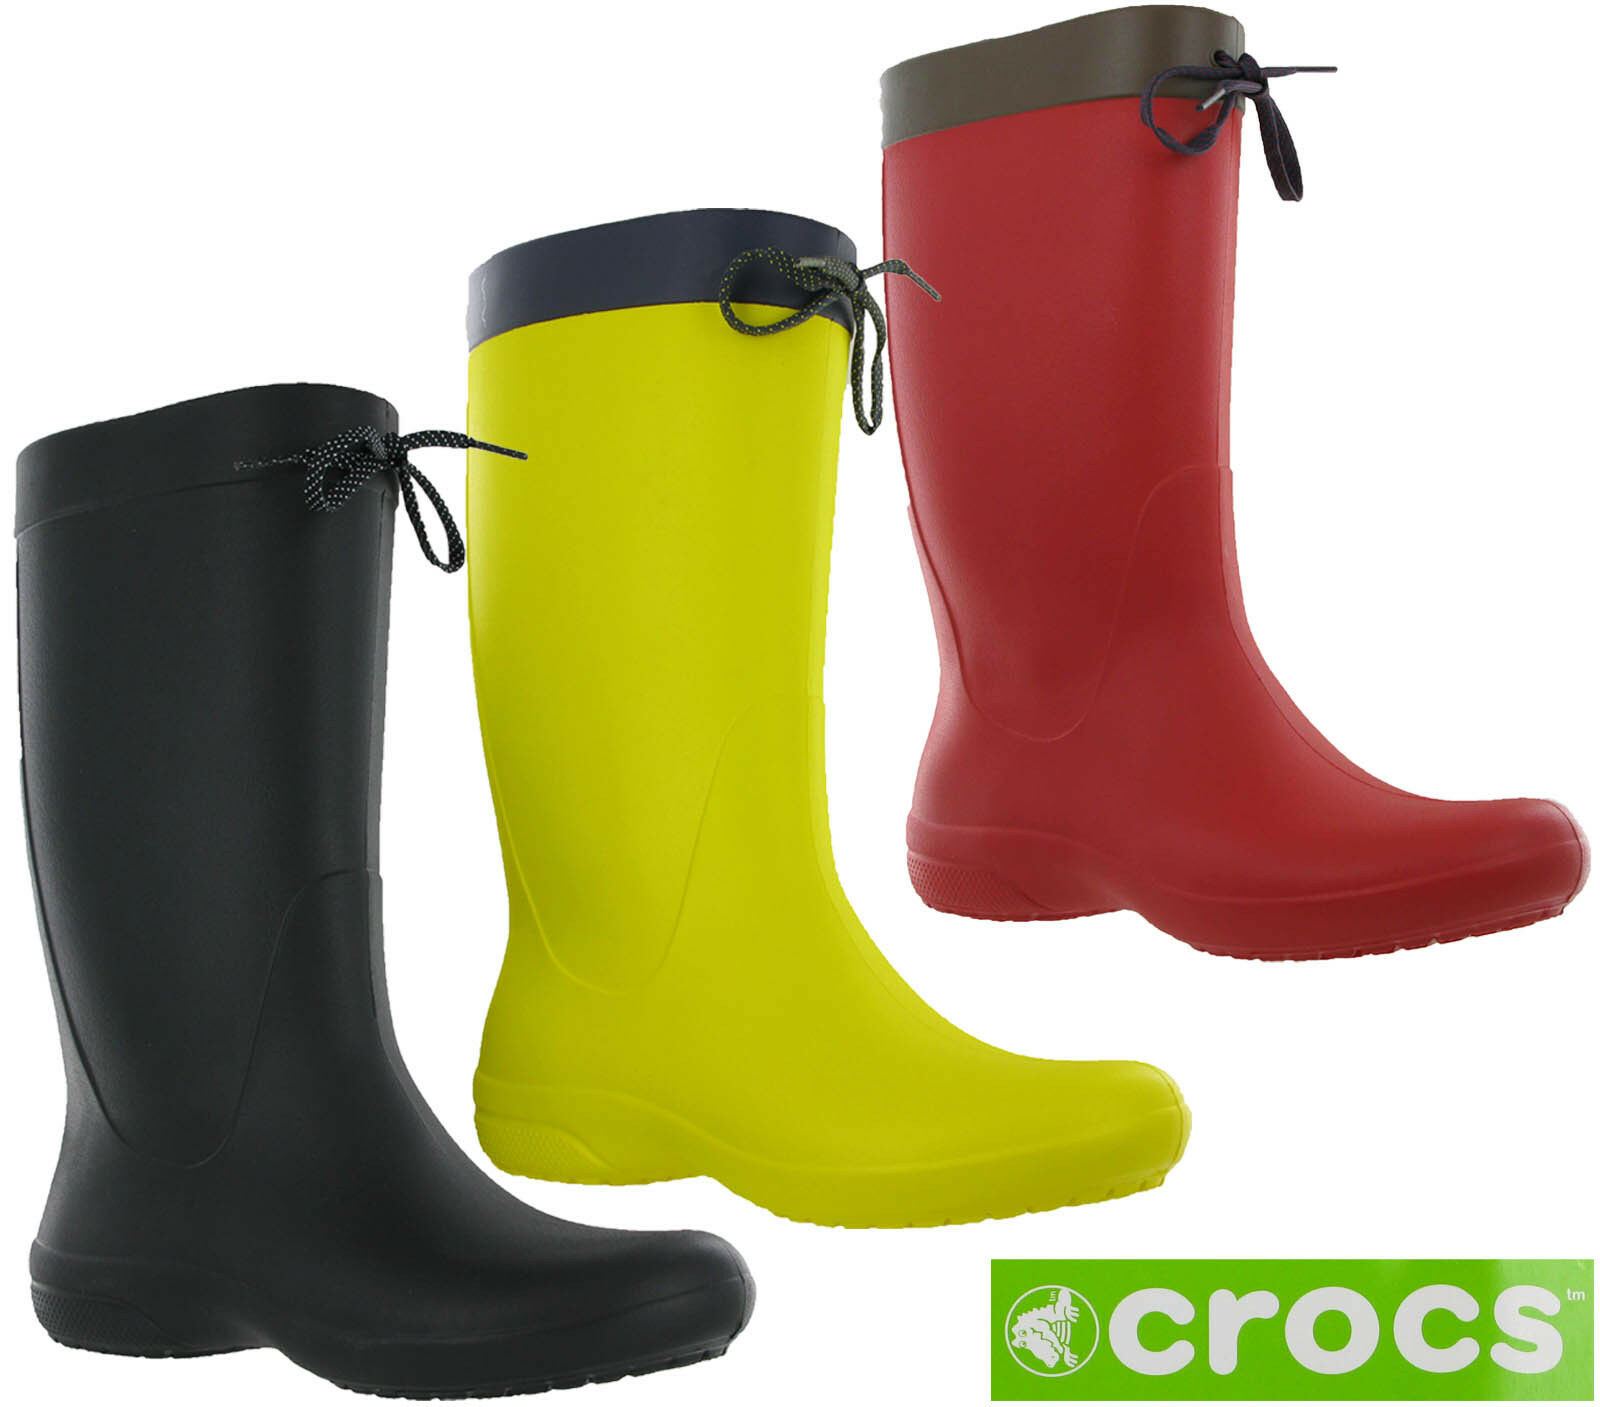 b8ec0de492ec8 Crocs Freesail Rain Boot Womens Calf Wellington Winter Pull On Lightweight  Boots